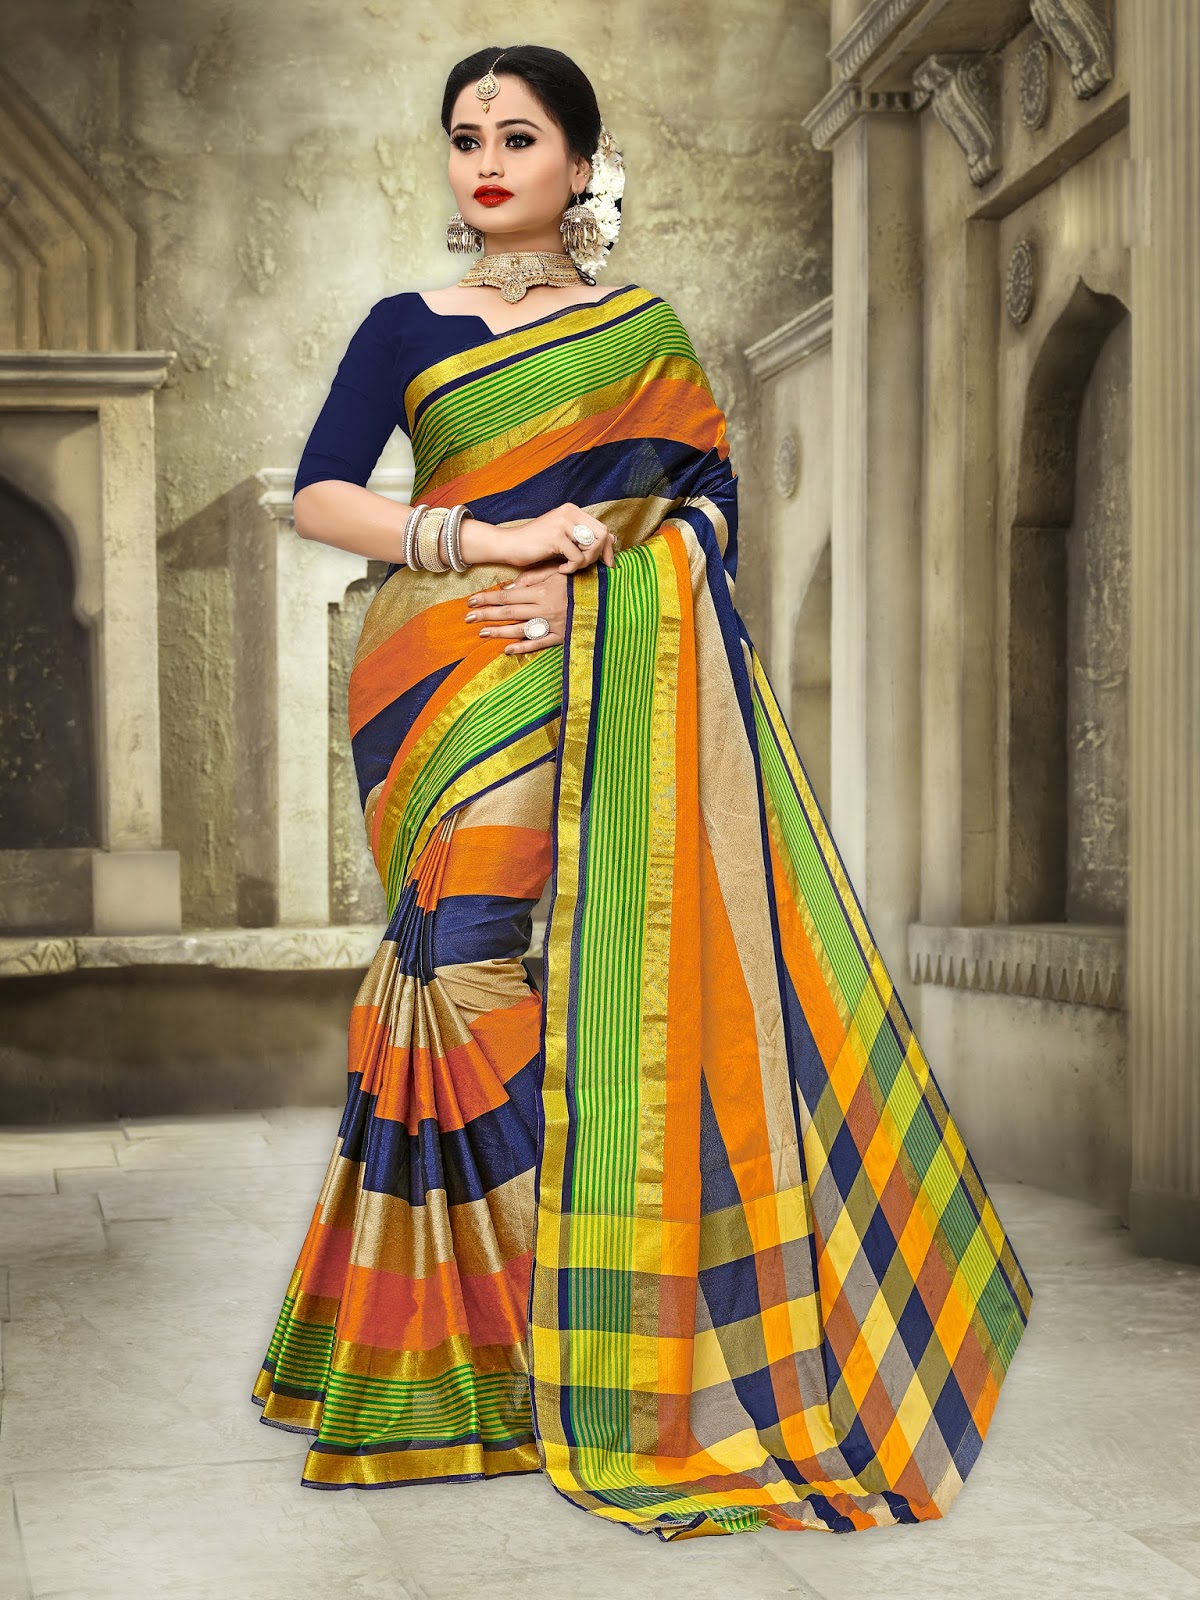 Riya Vol 1 – Latest New Stylish Banarasi Art Silk Saree